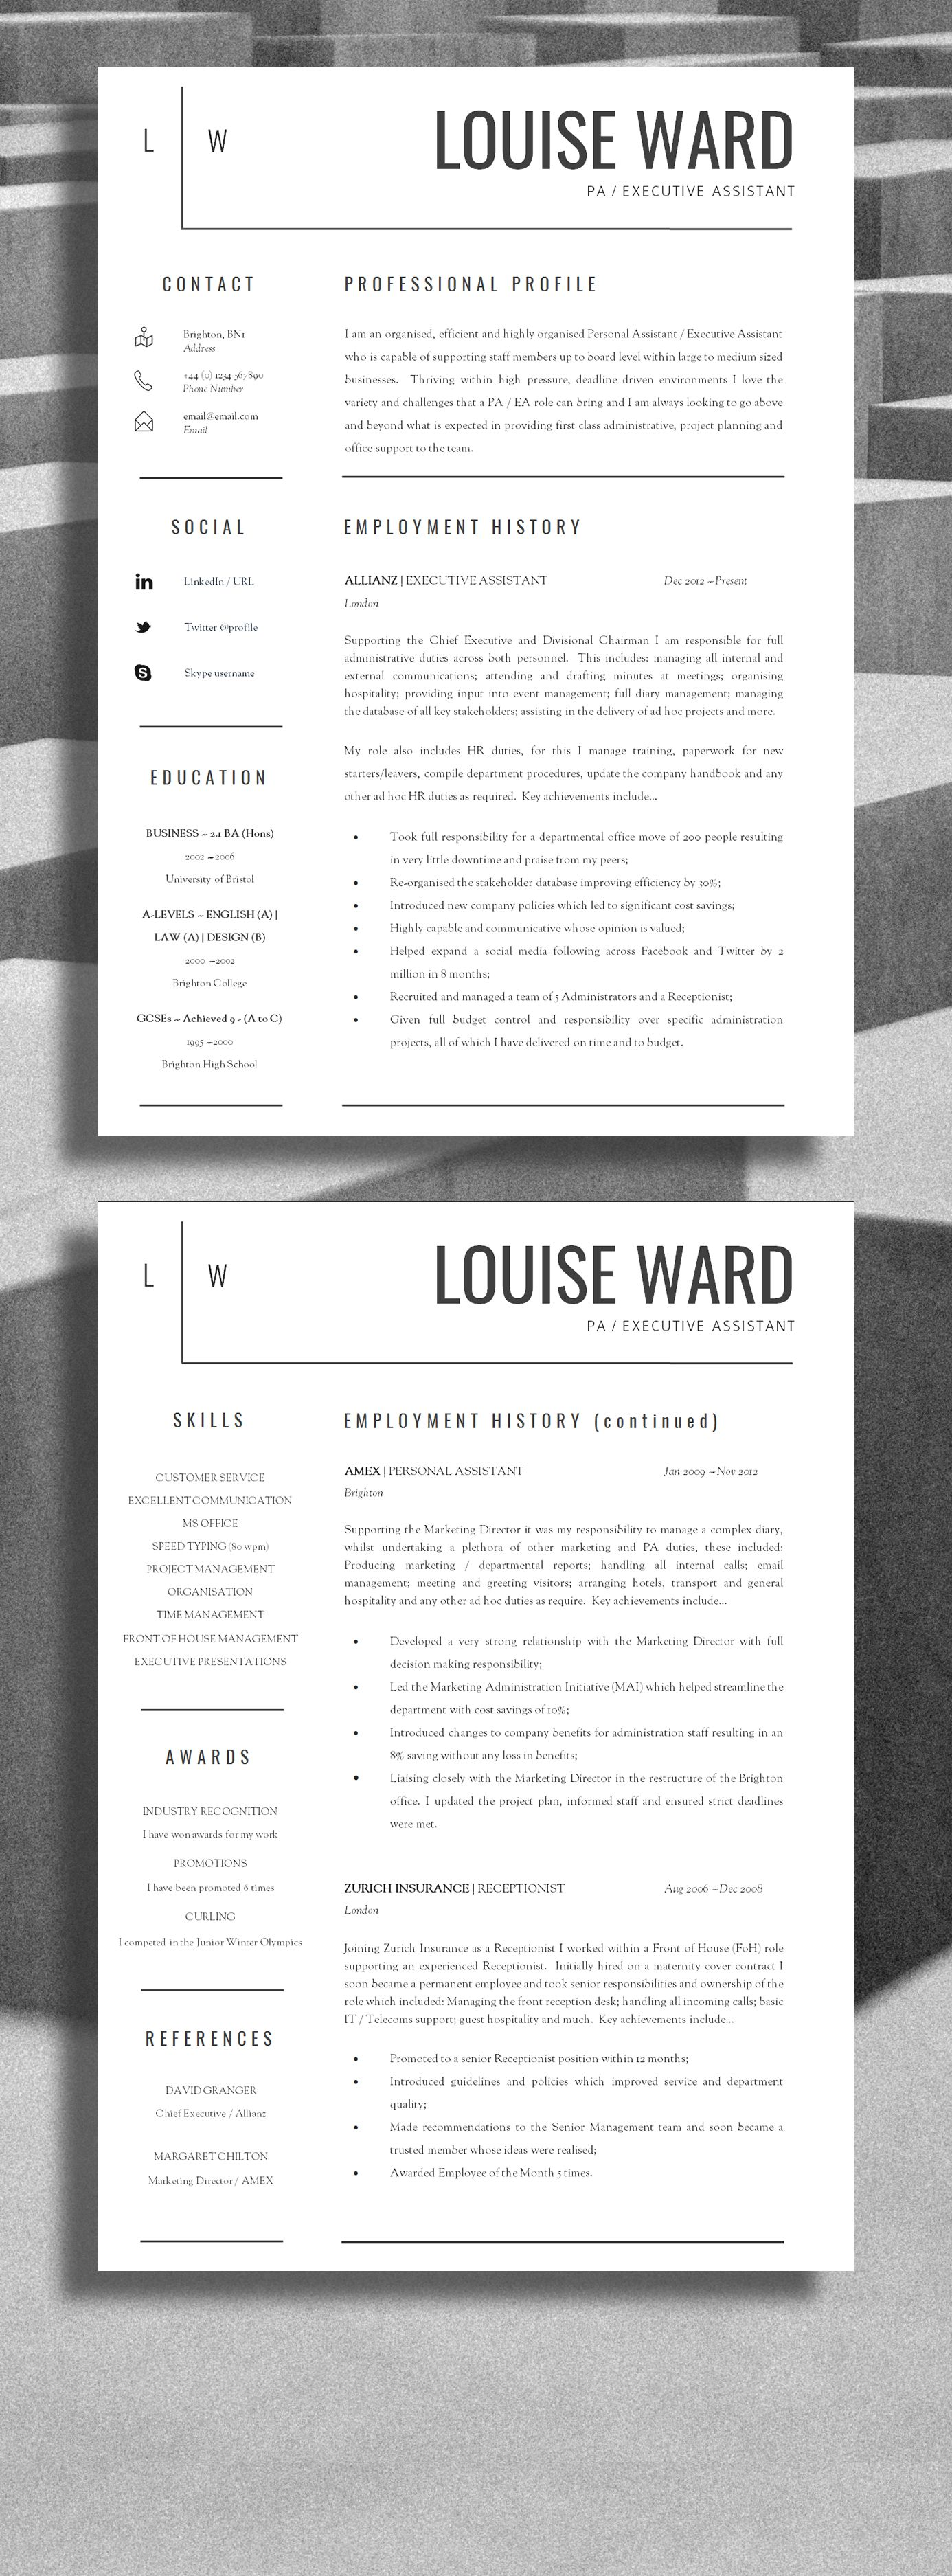 resume template cv template cover letter resume advice for professional resume design professional cv design be professional and get more interviews career